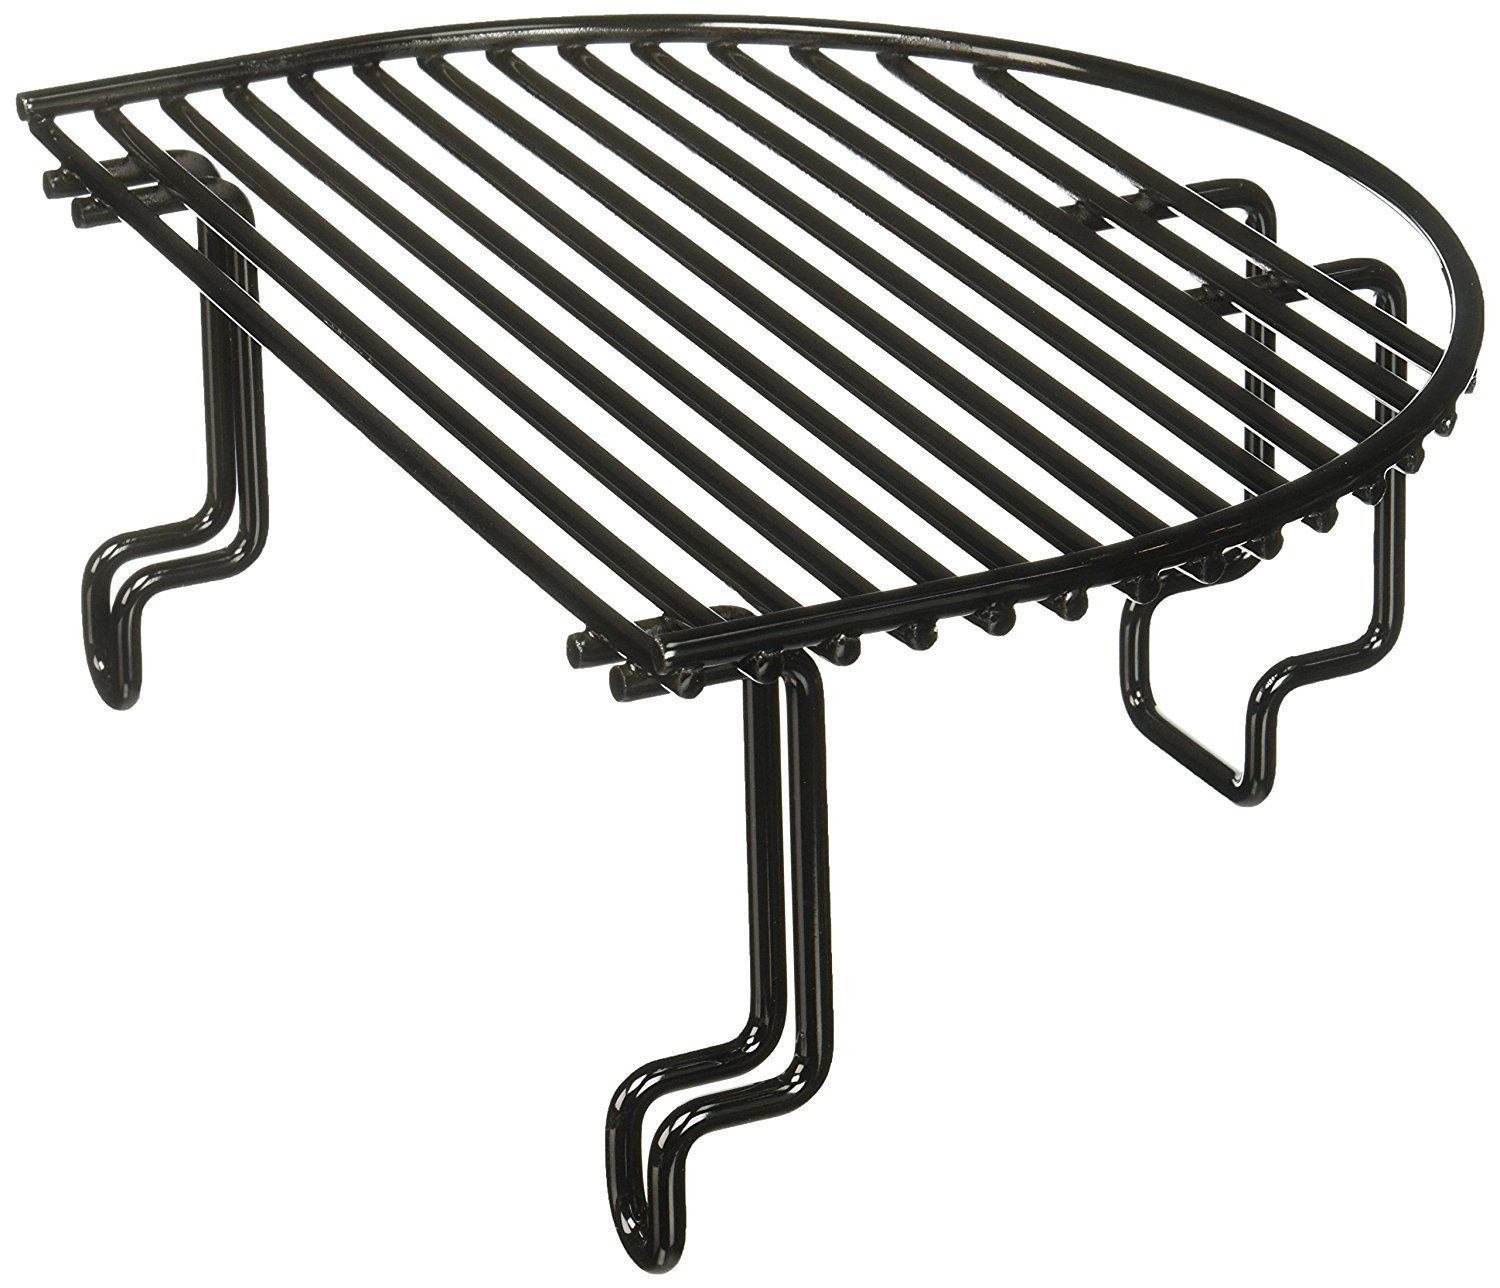 soldbbq Extended Cooking Rack Replacement for Primo Oval XL Grill by Primo 332, 1 per Box by soldbbq